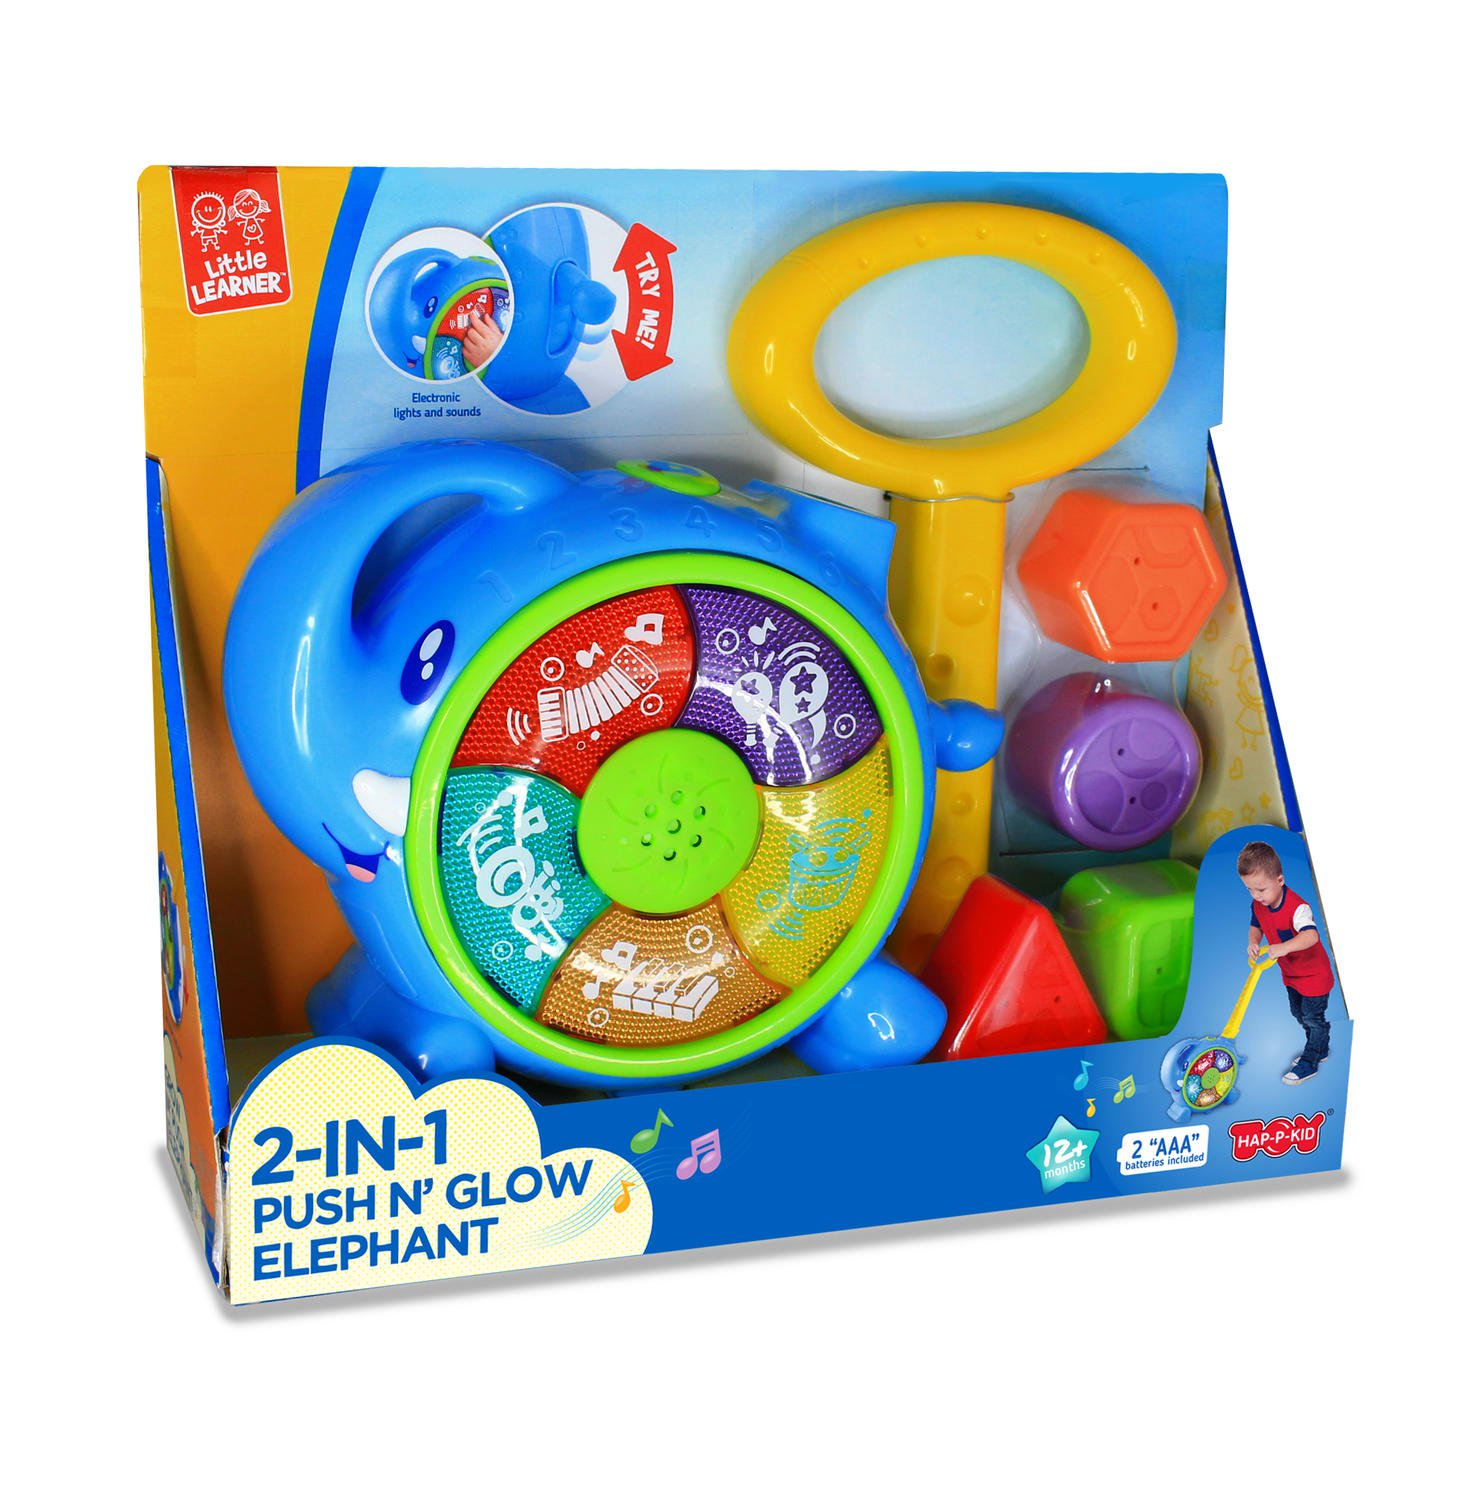 Jucarie de impins 2 in 1 - Elefantel imagine